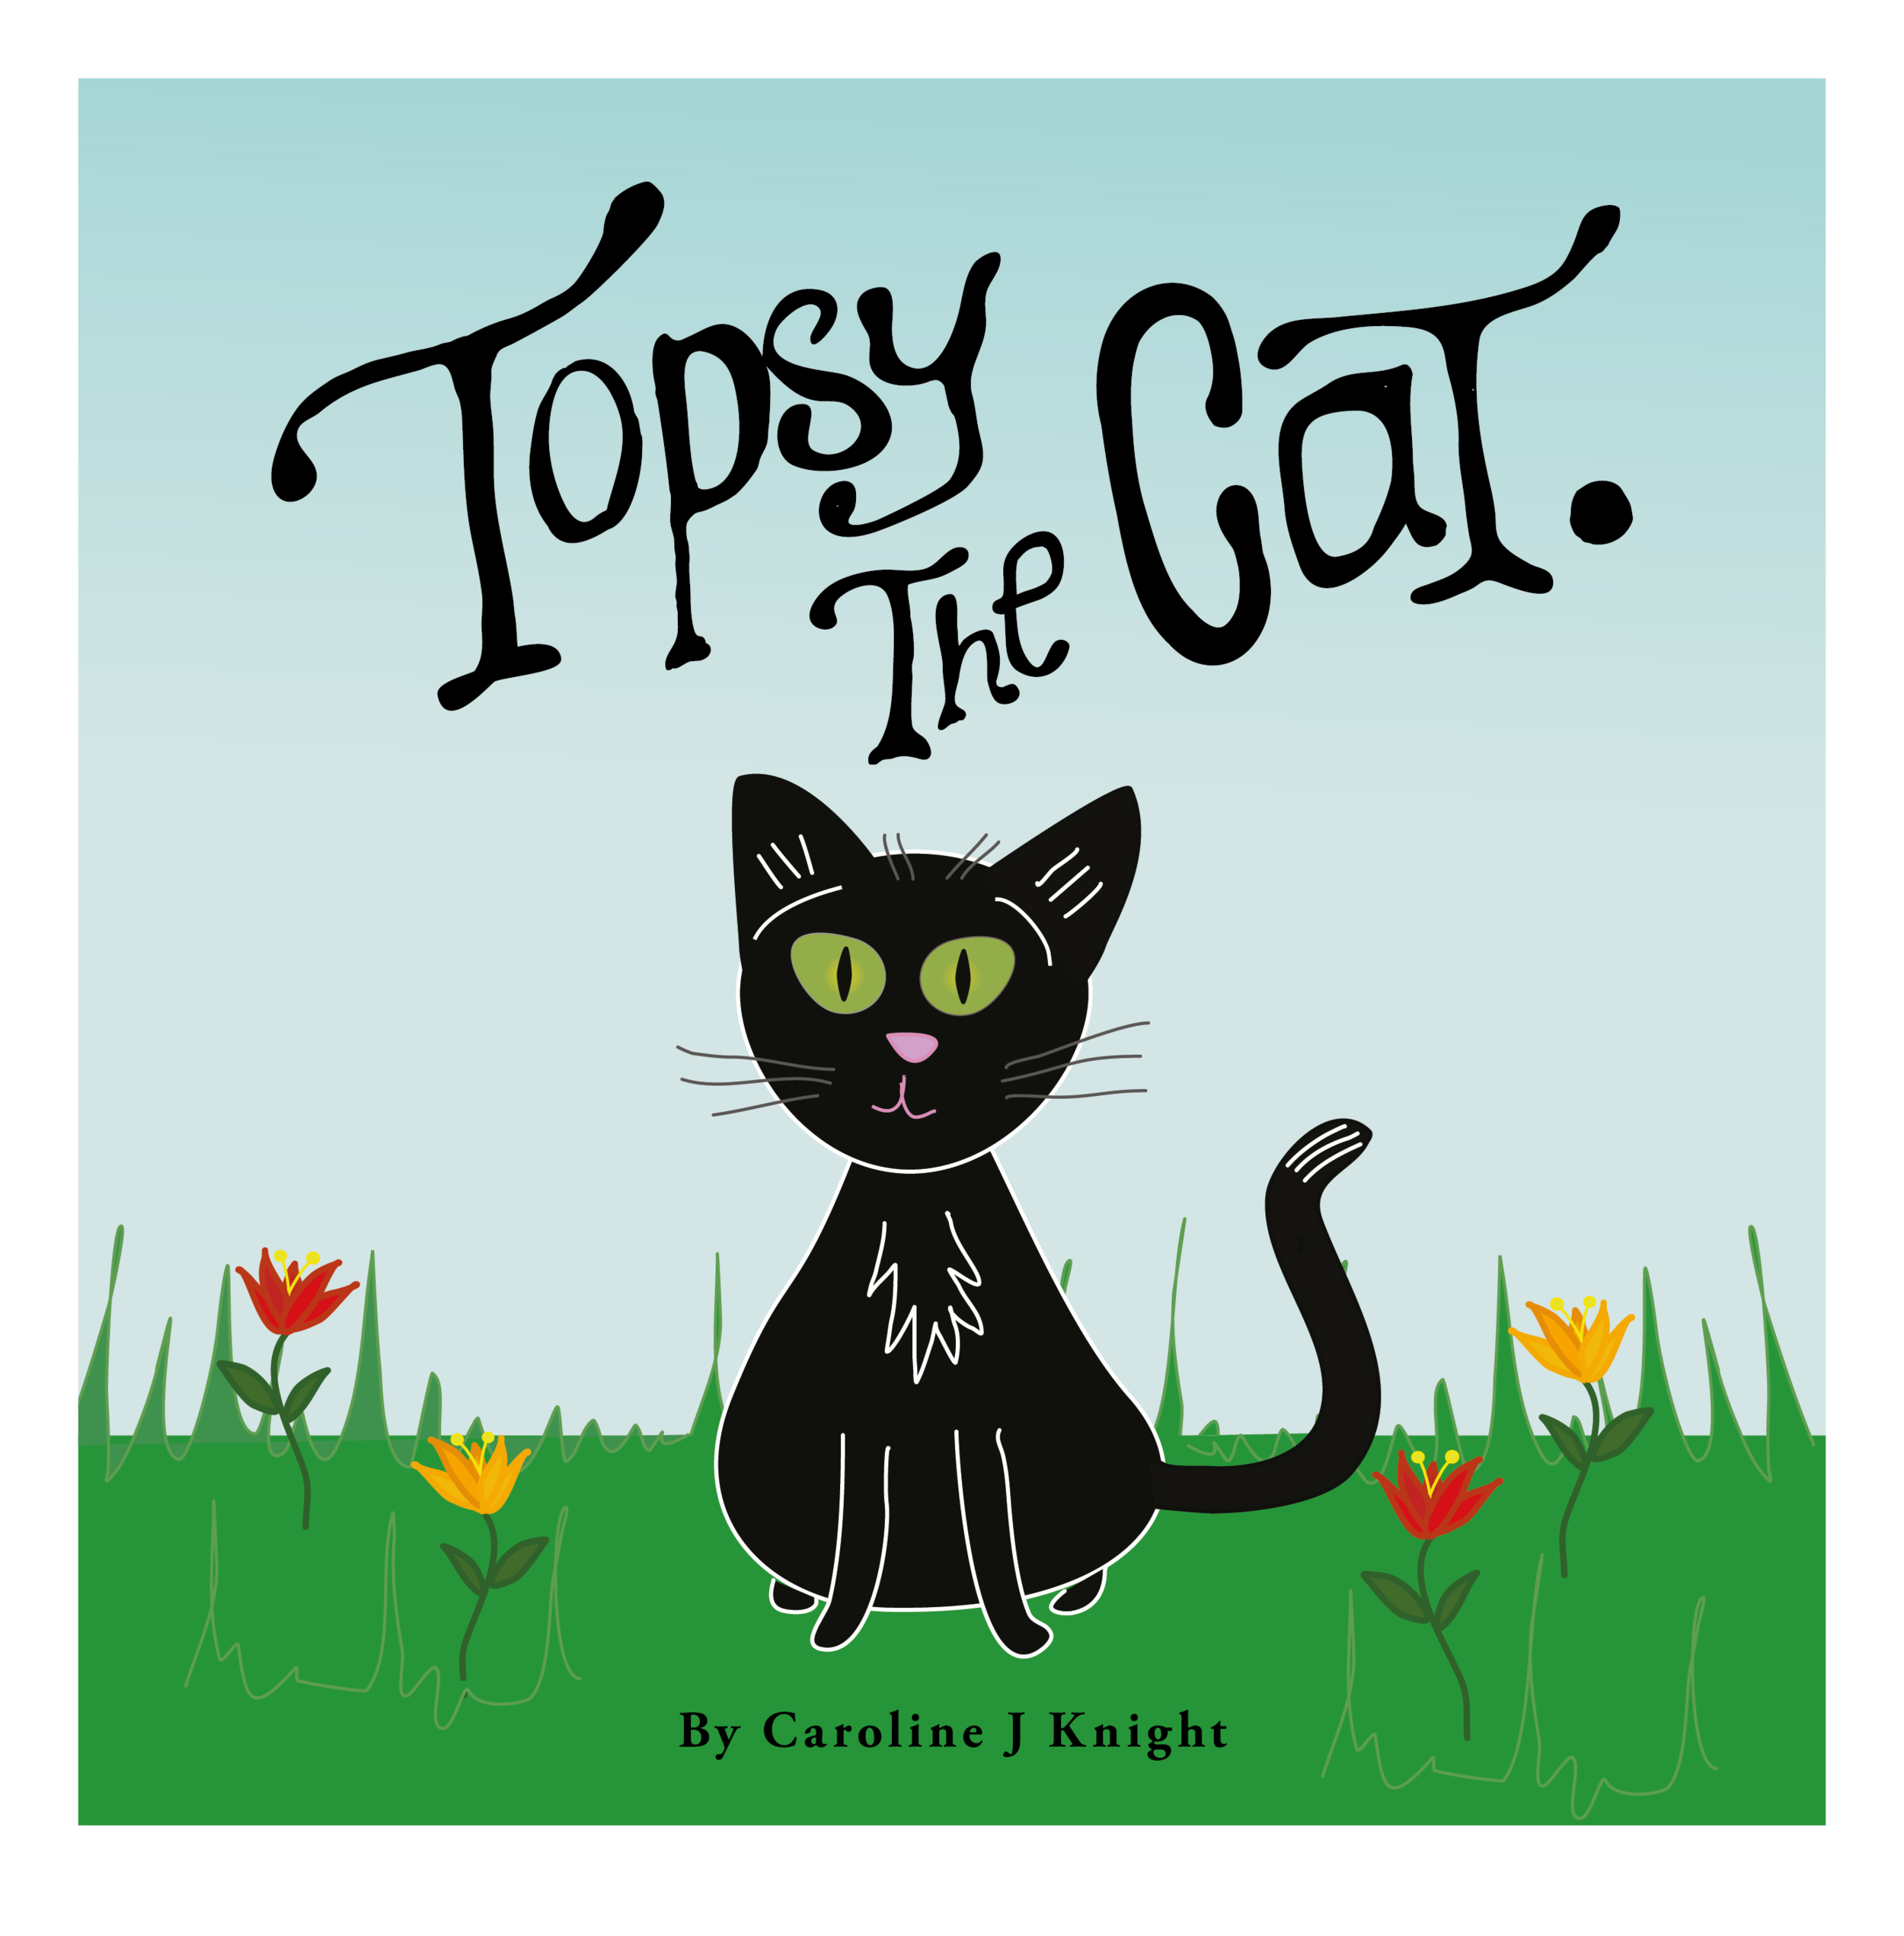 Topsy The Cat proof 6 of 1.png